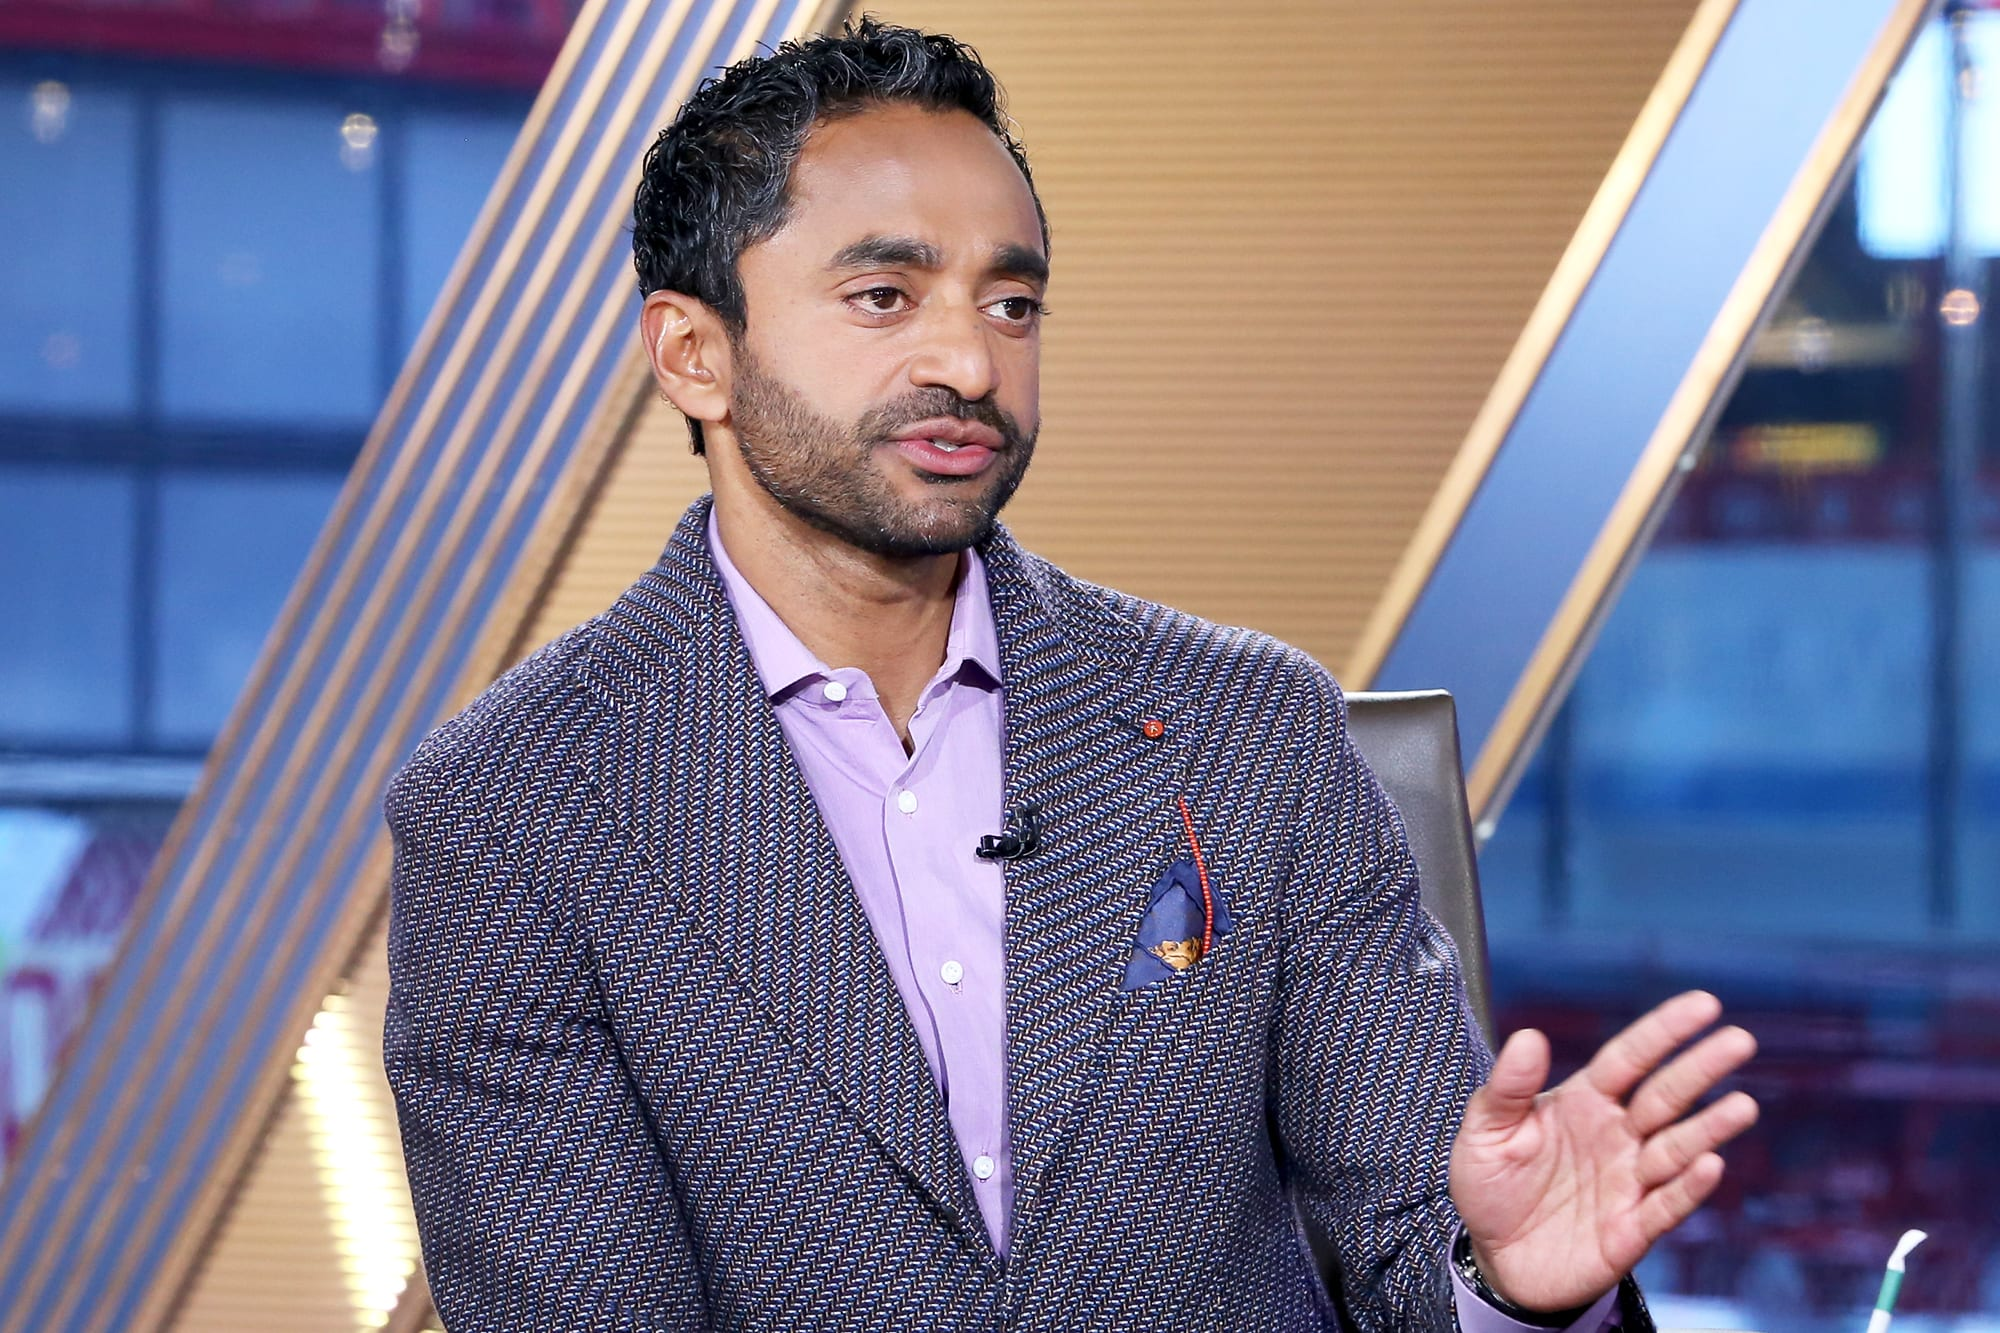 Access here alternative investment news about Palihapitiya In $4.8B Spac Deal For Real Estate Start-up Opendoor